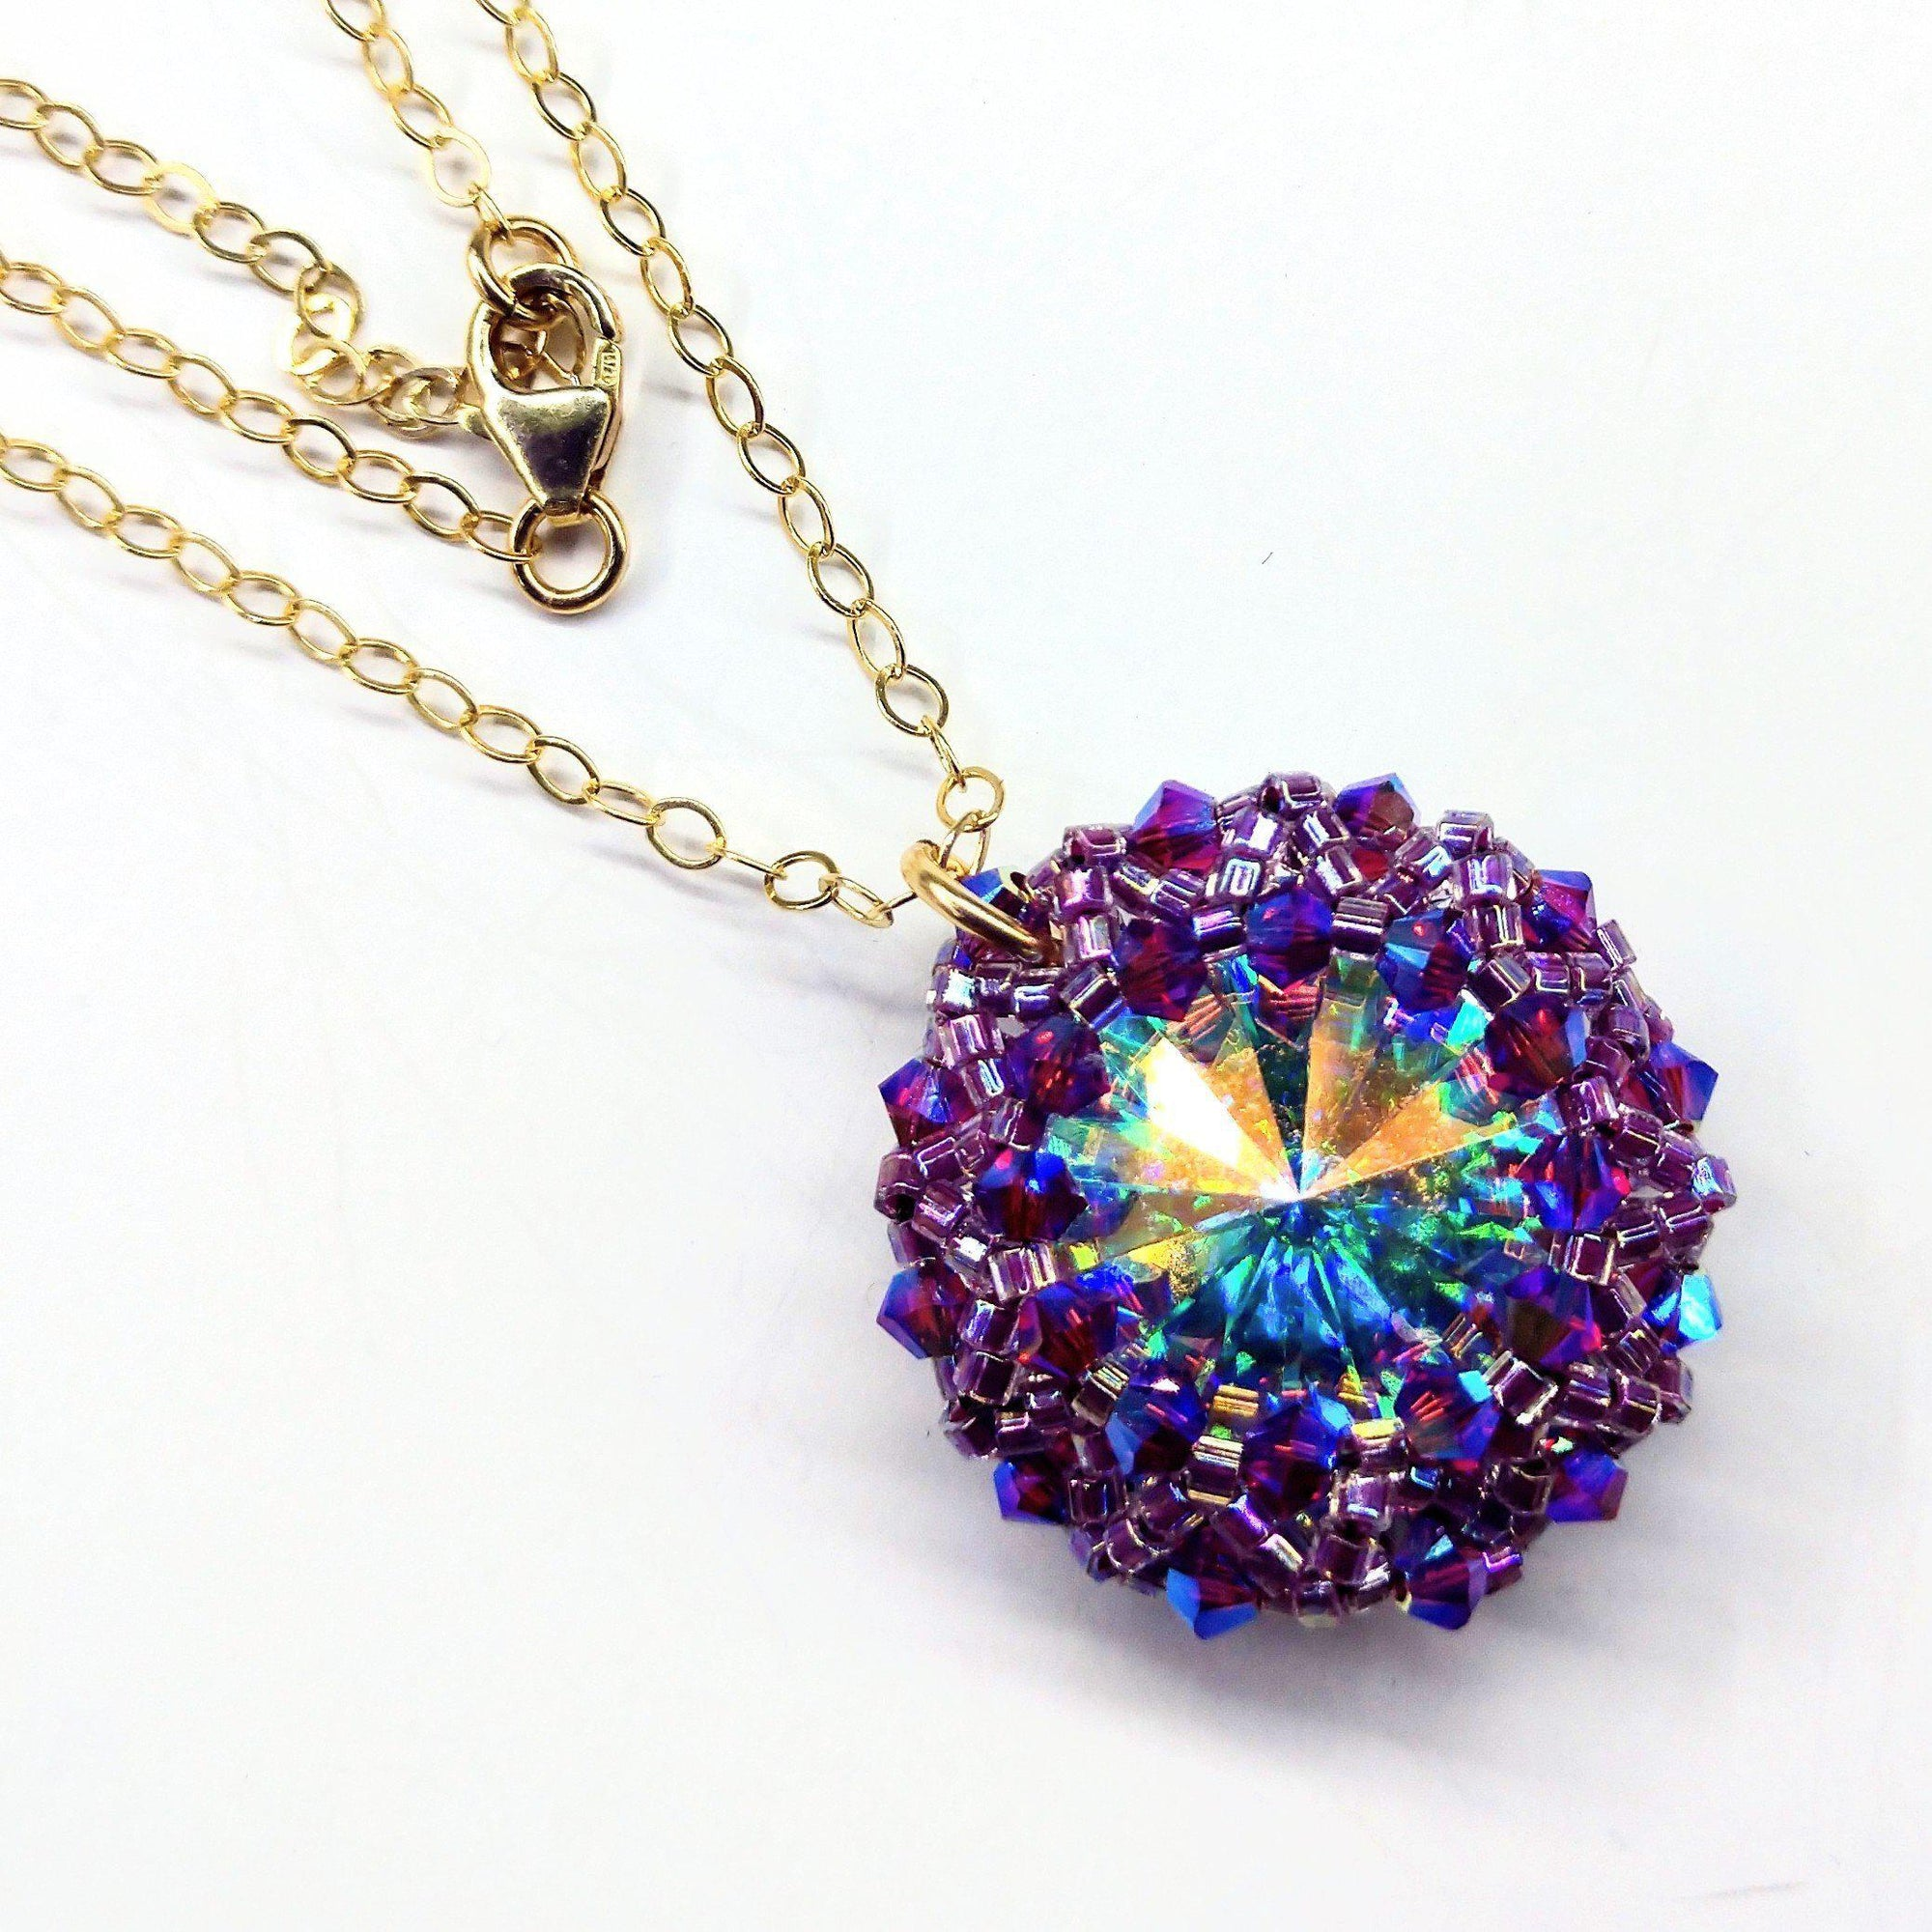 Is that a Real Swarovski Crystal?-Lexi Butler Designs